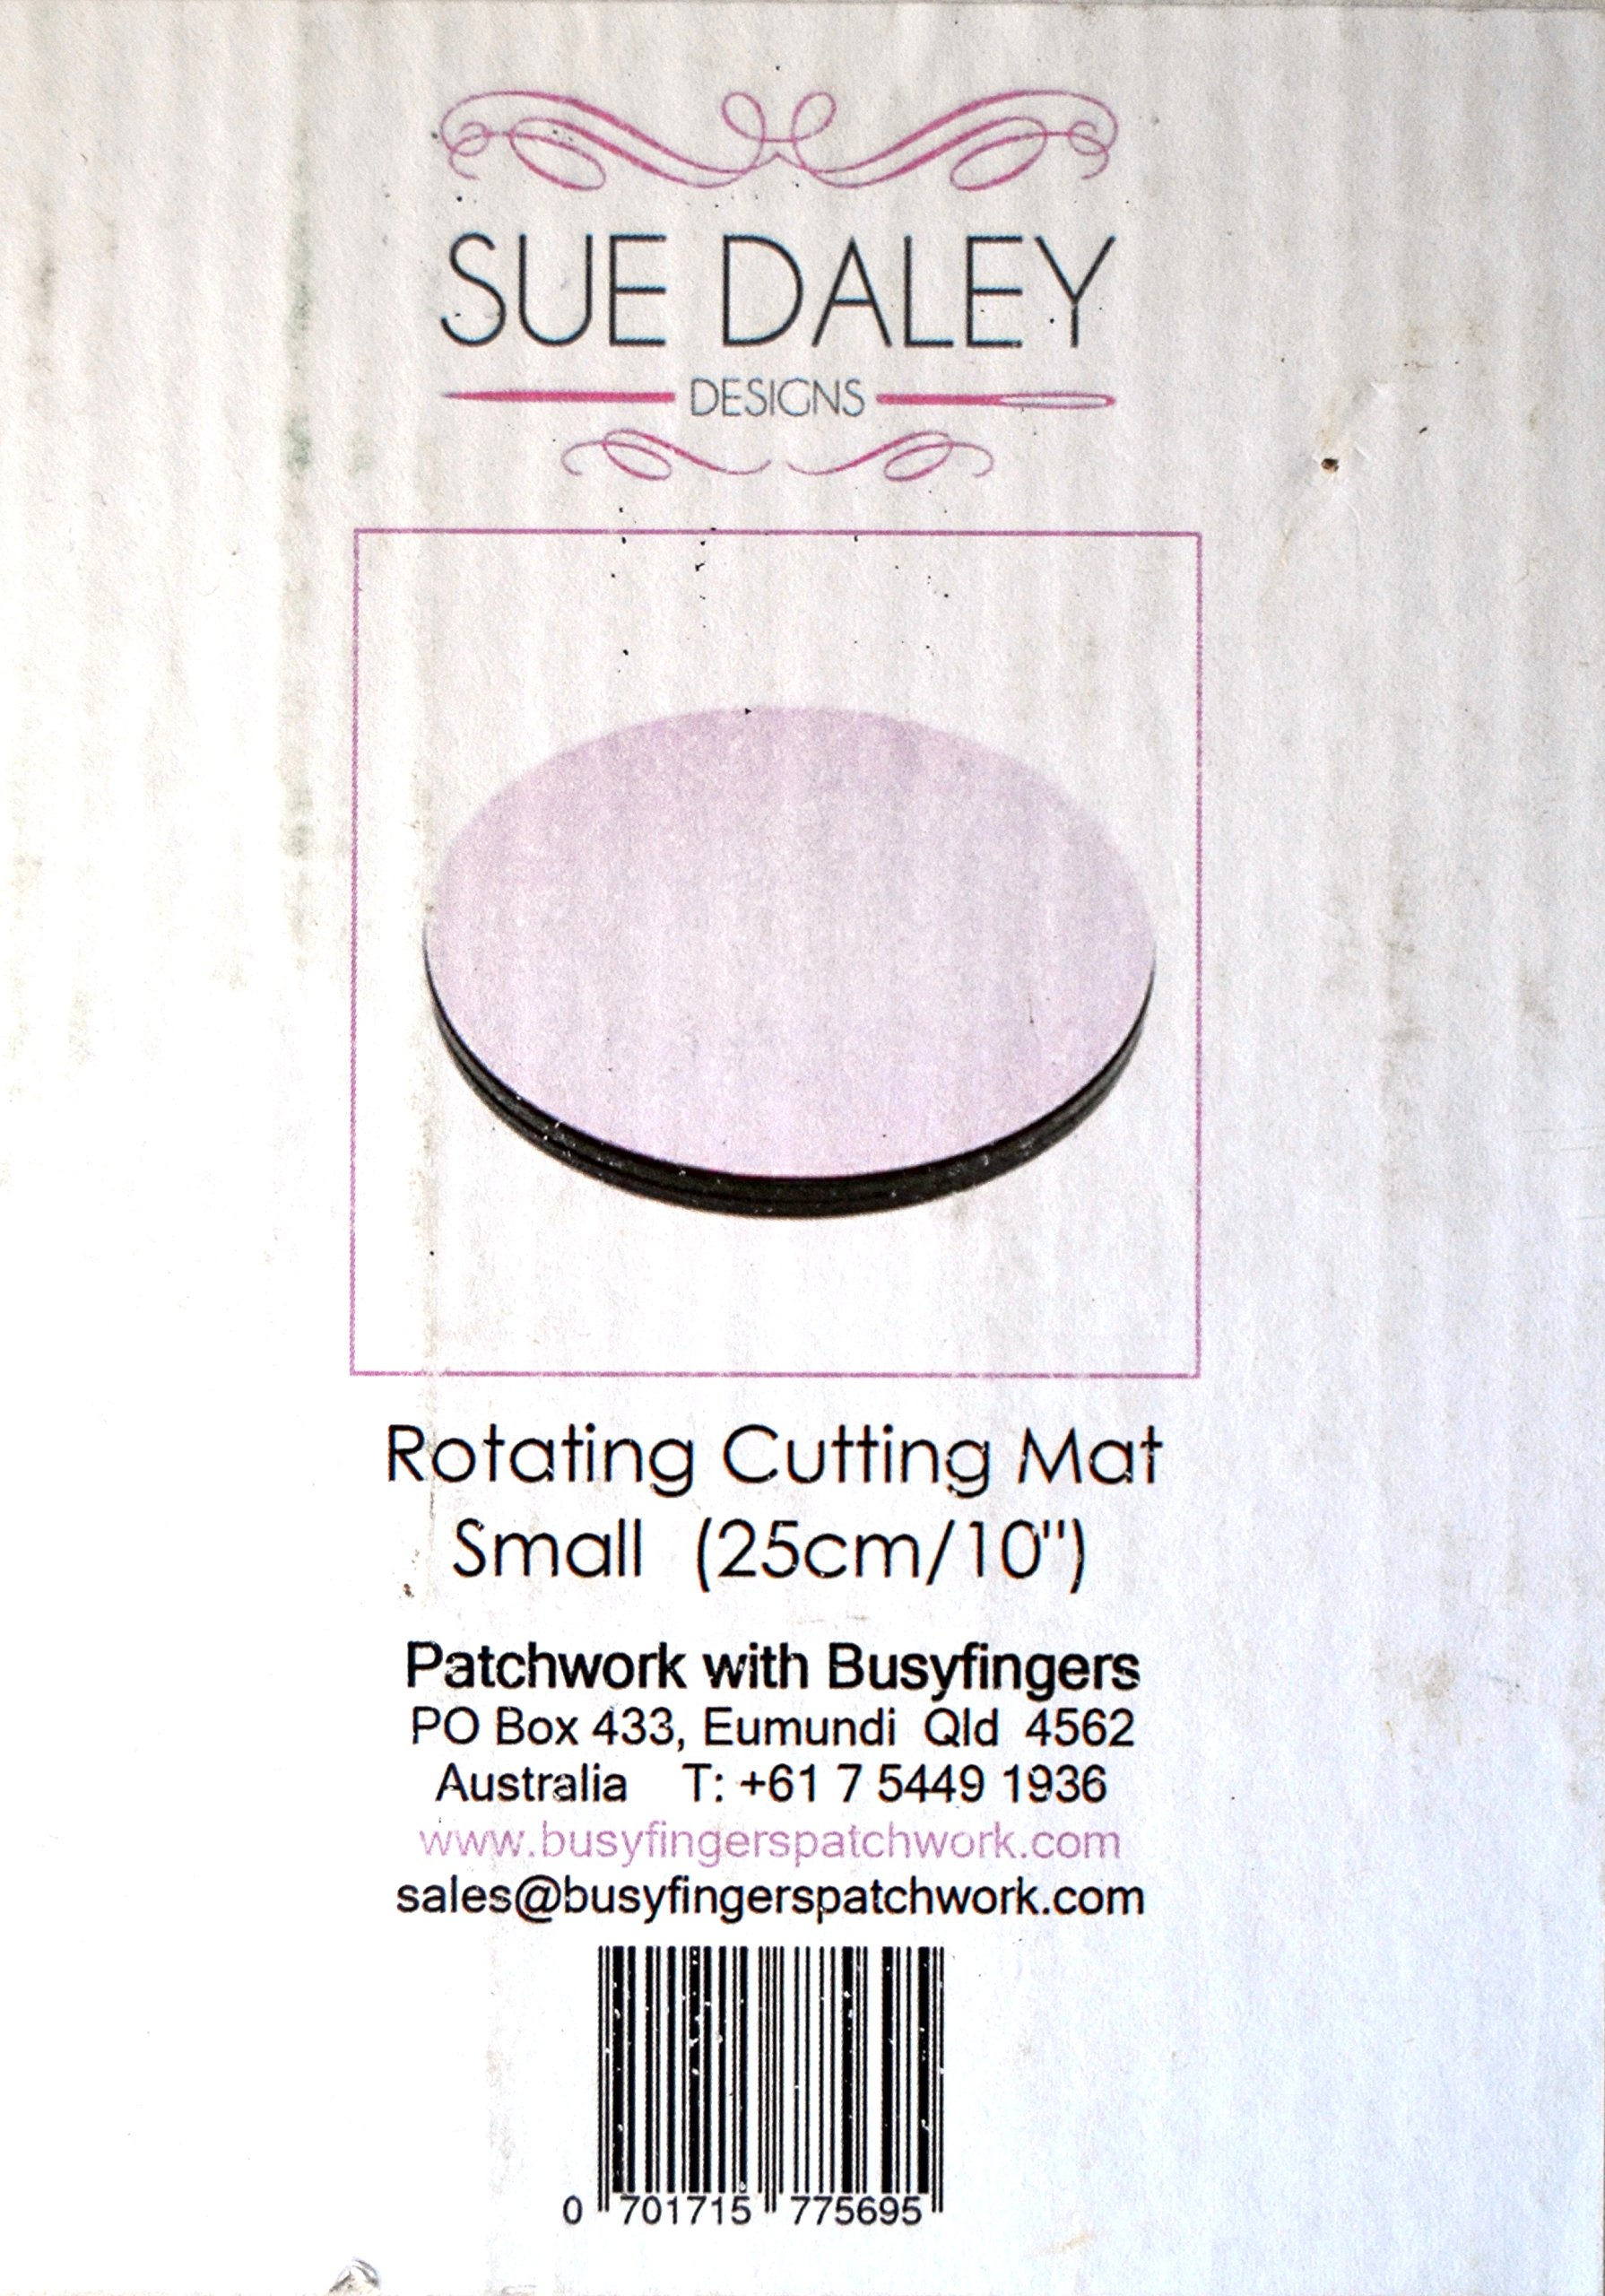 Small Rotating Cutting Mat 10 inch Diameter by Sue Daley Designs by Sue Daley Designs